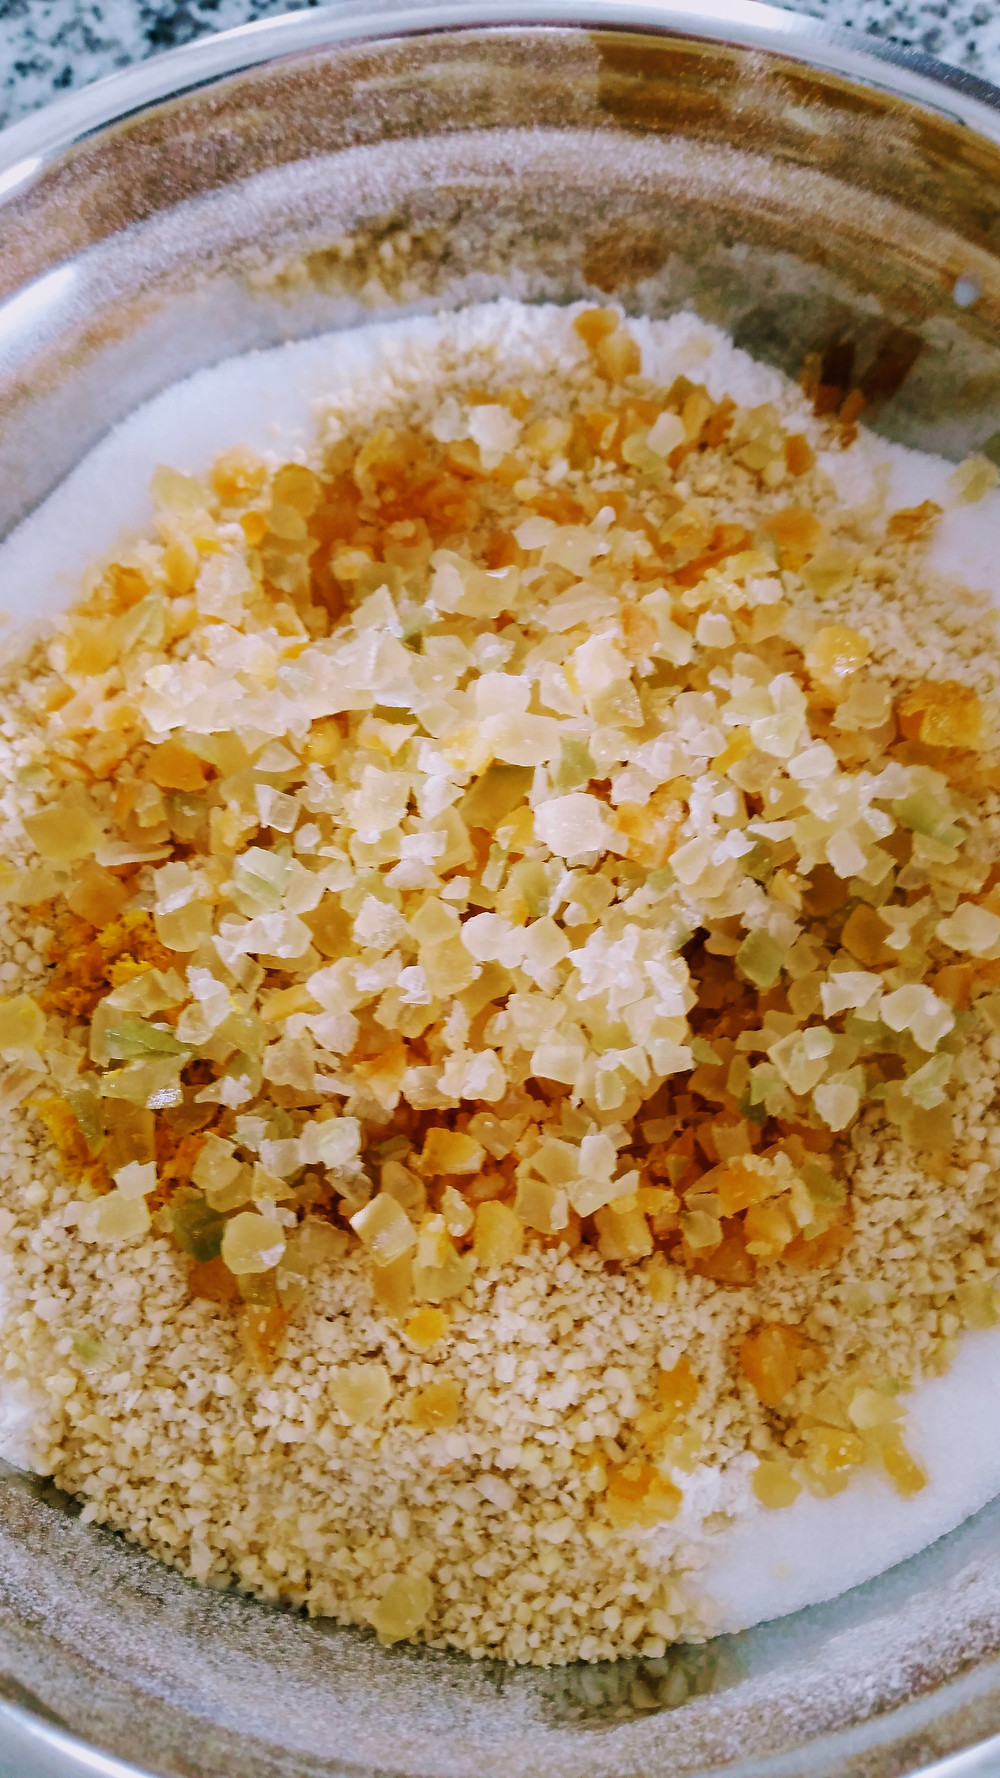 Lemon peel and almonds being added to yeast dough